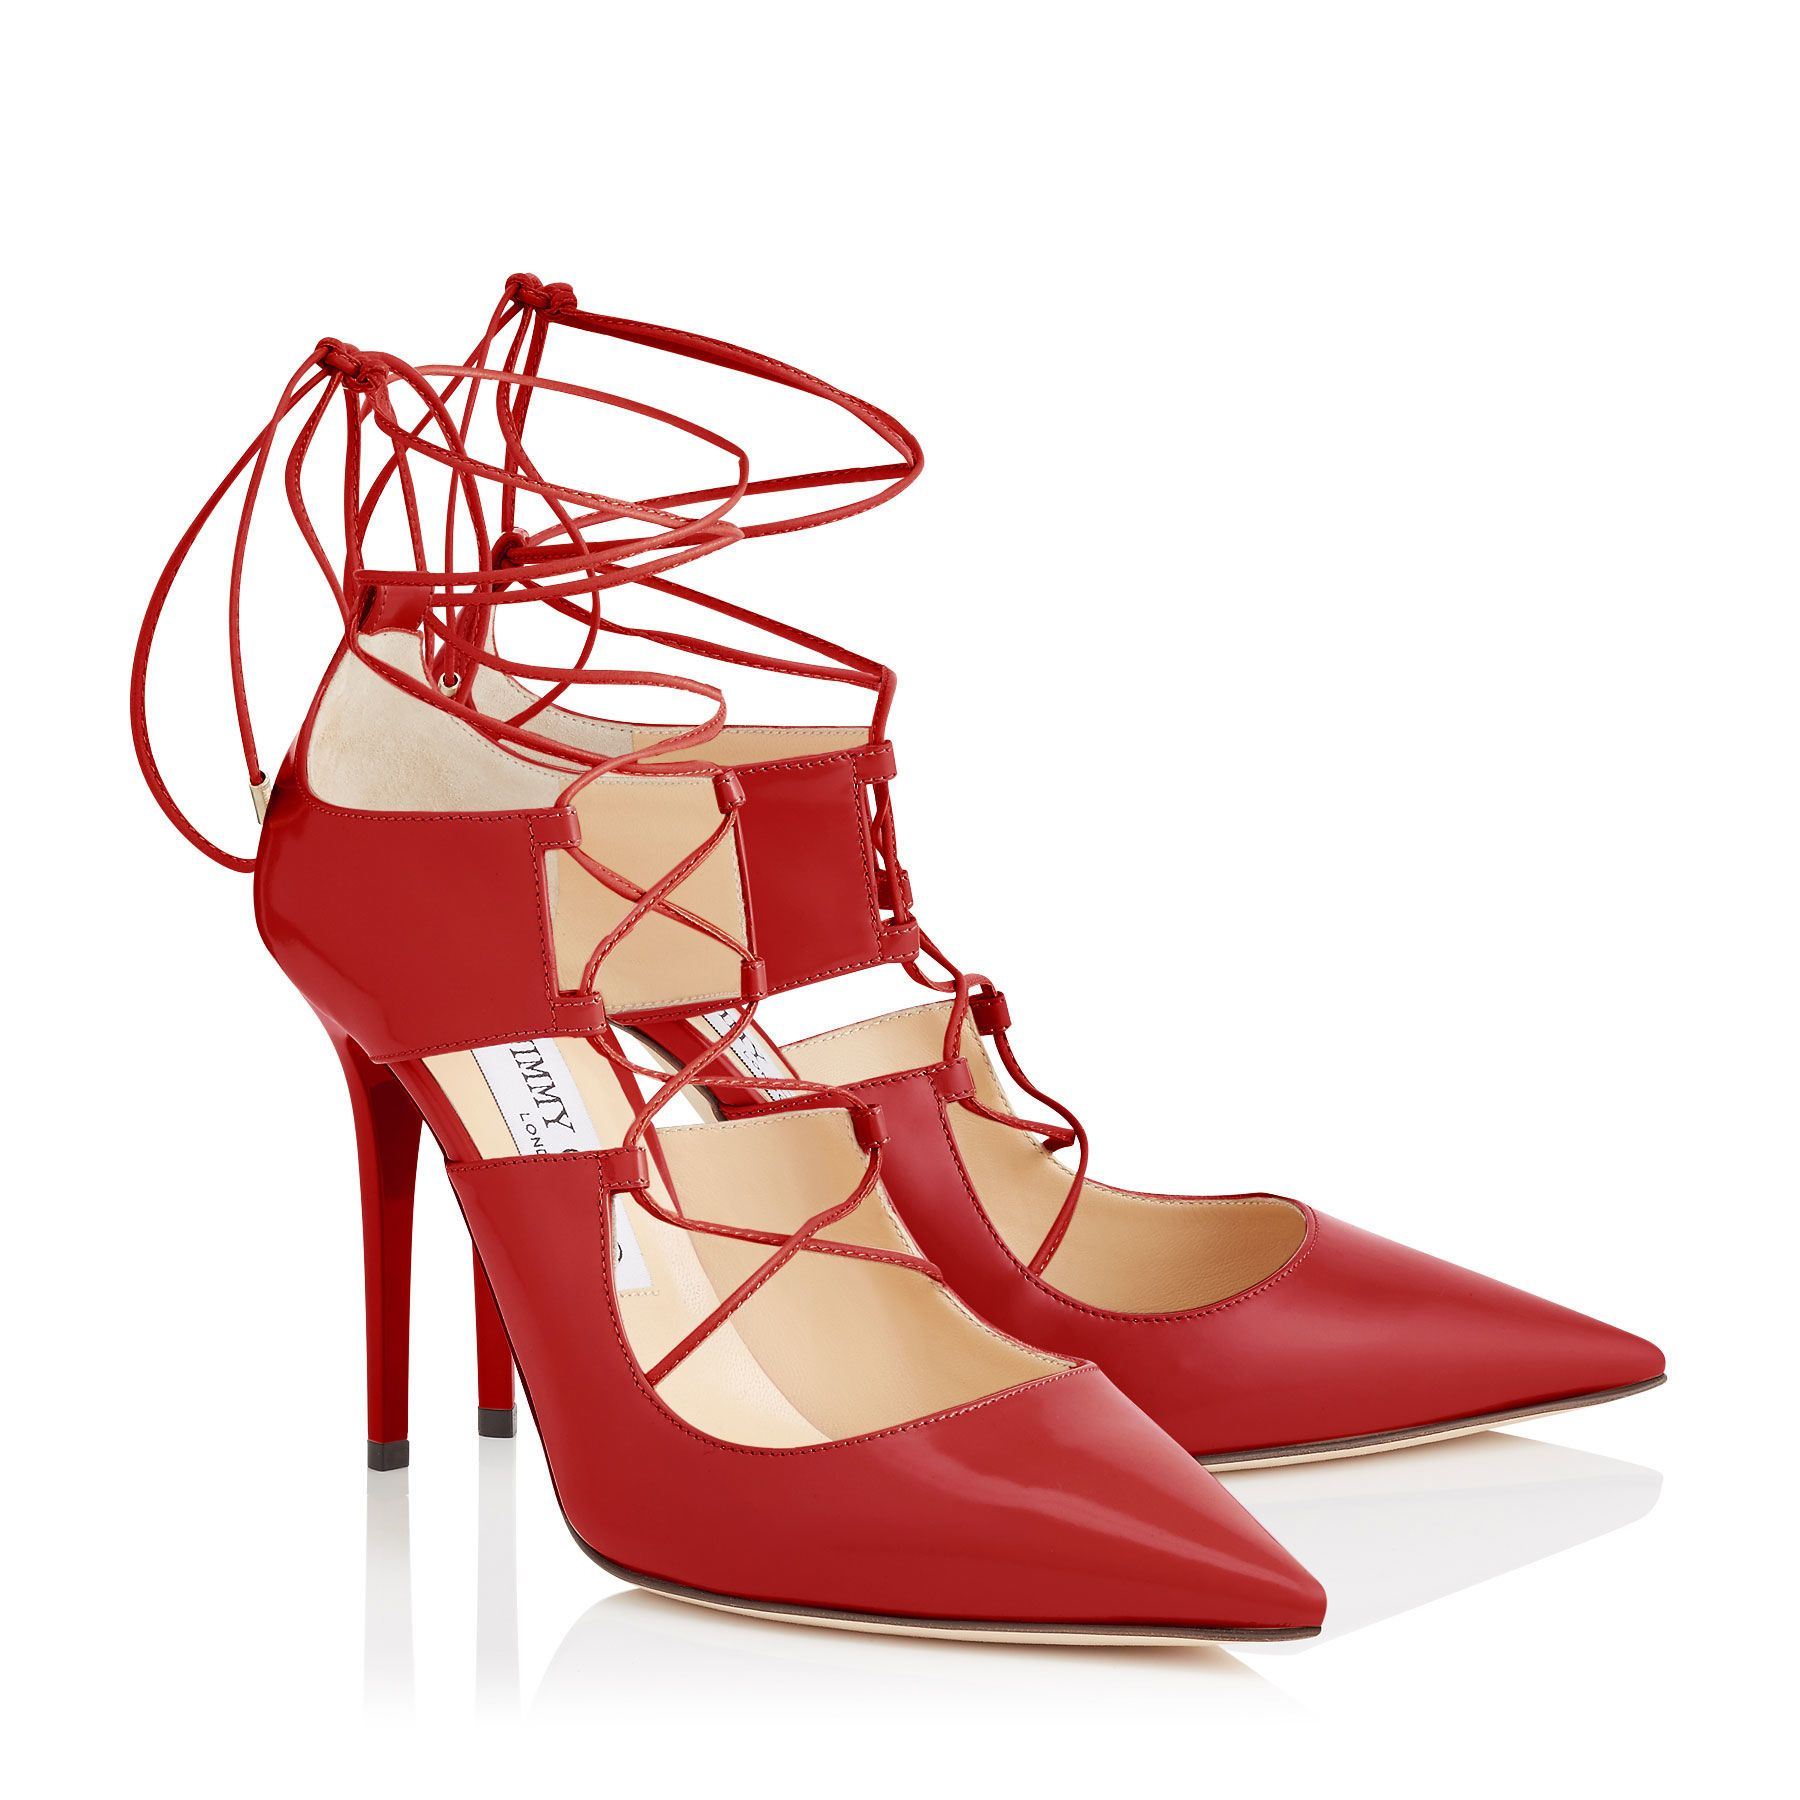 The Jimmy Choo red shiny leather pointy toe lace up HOOPS pumps